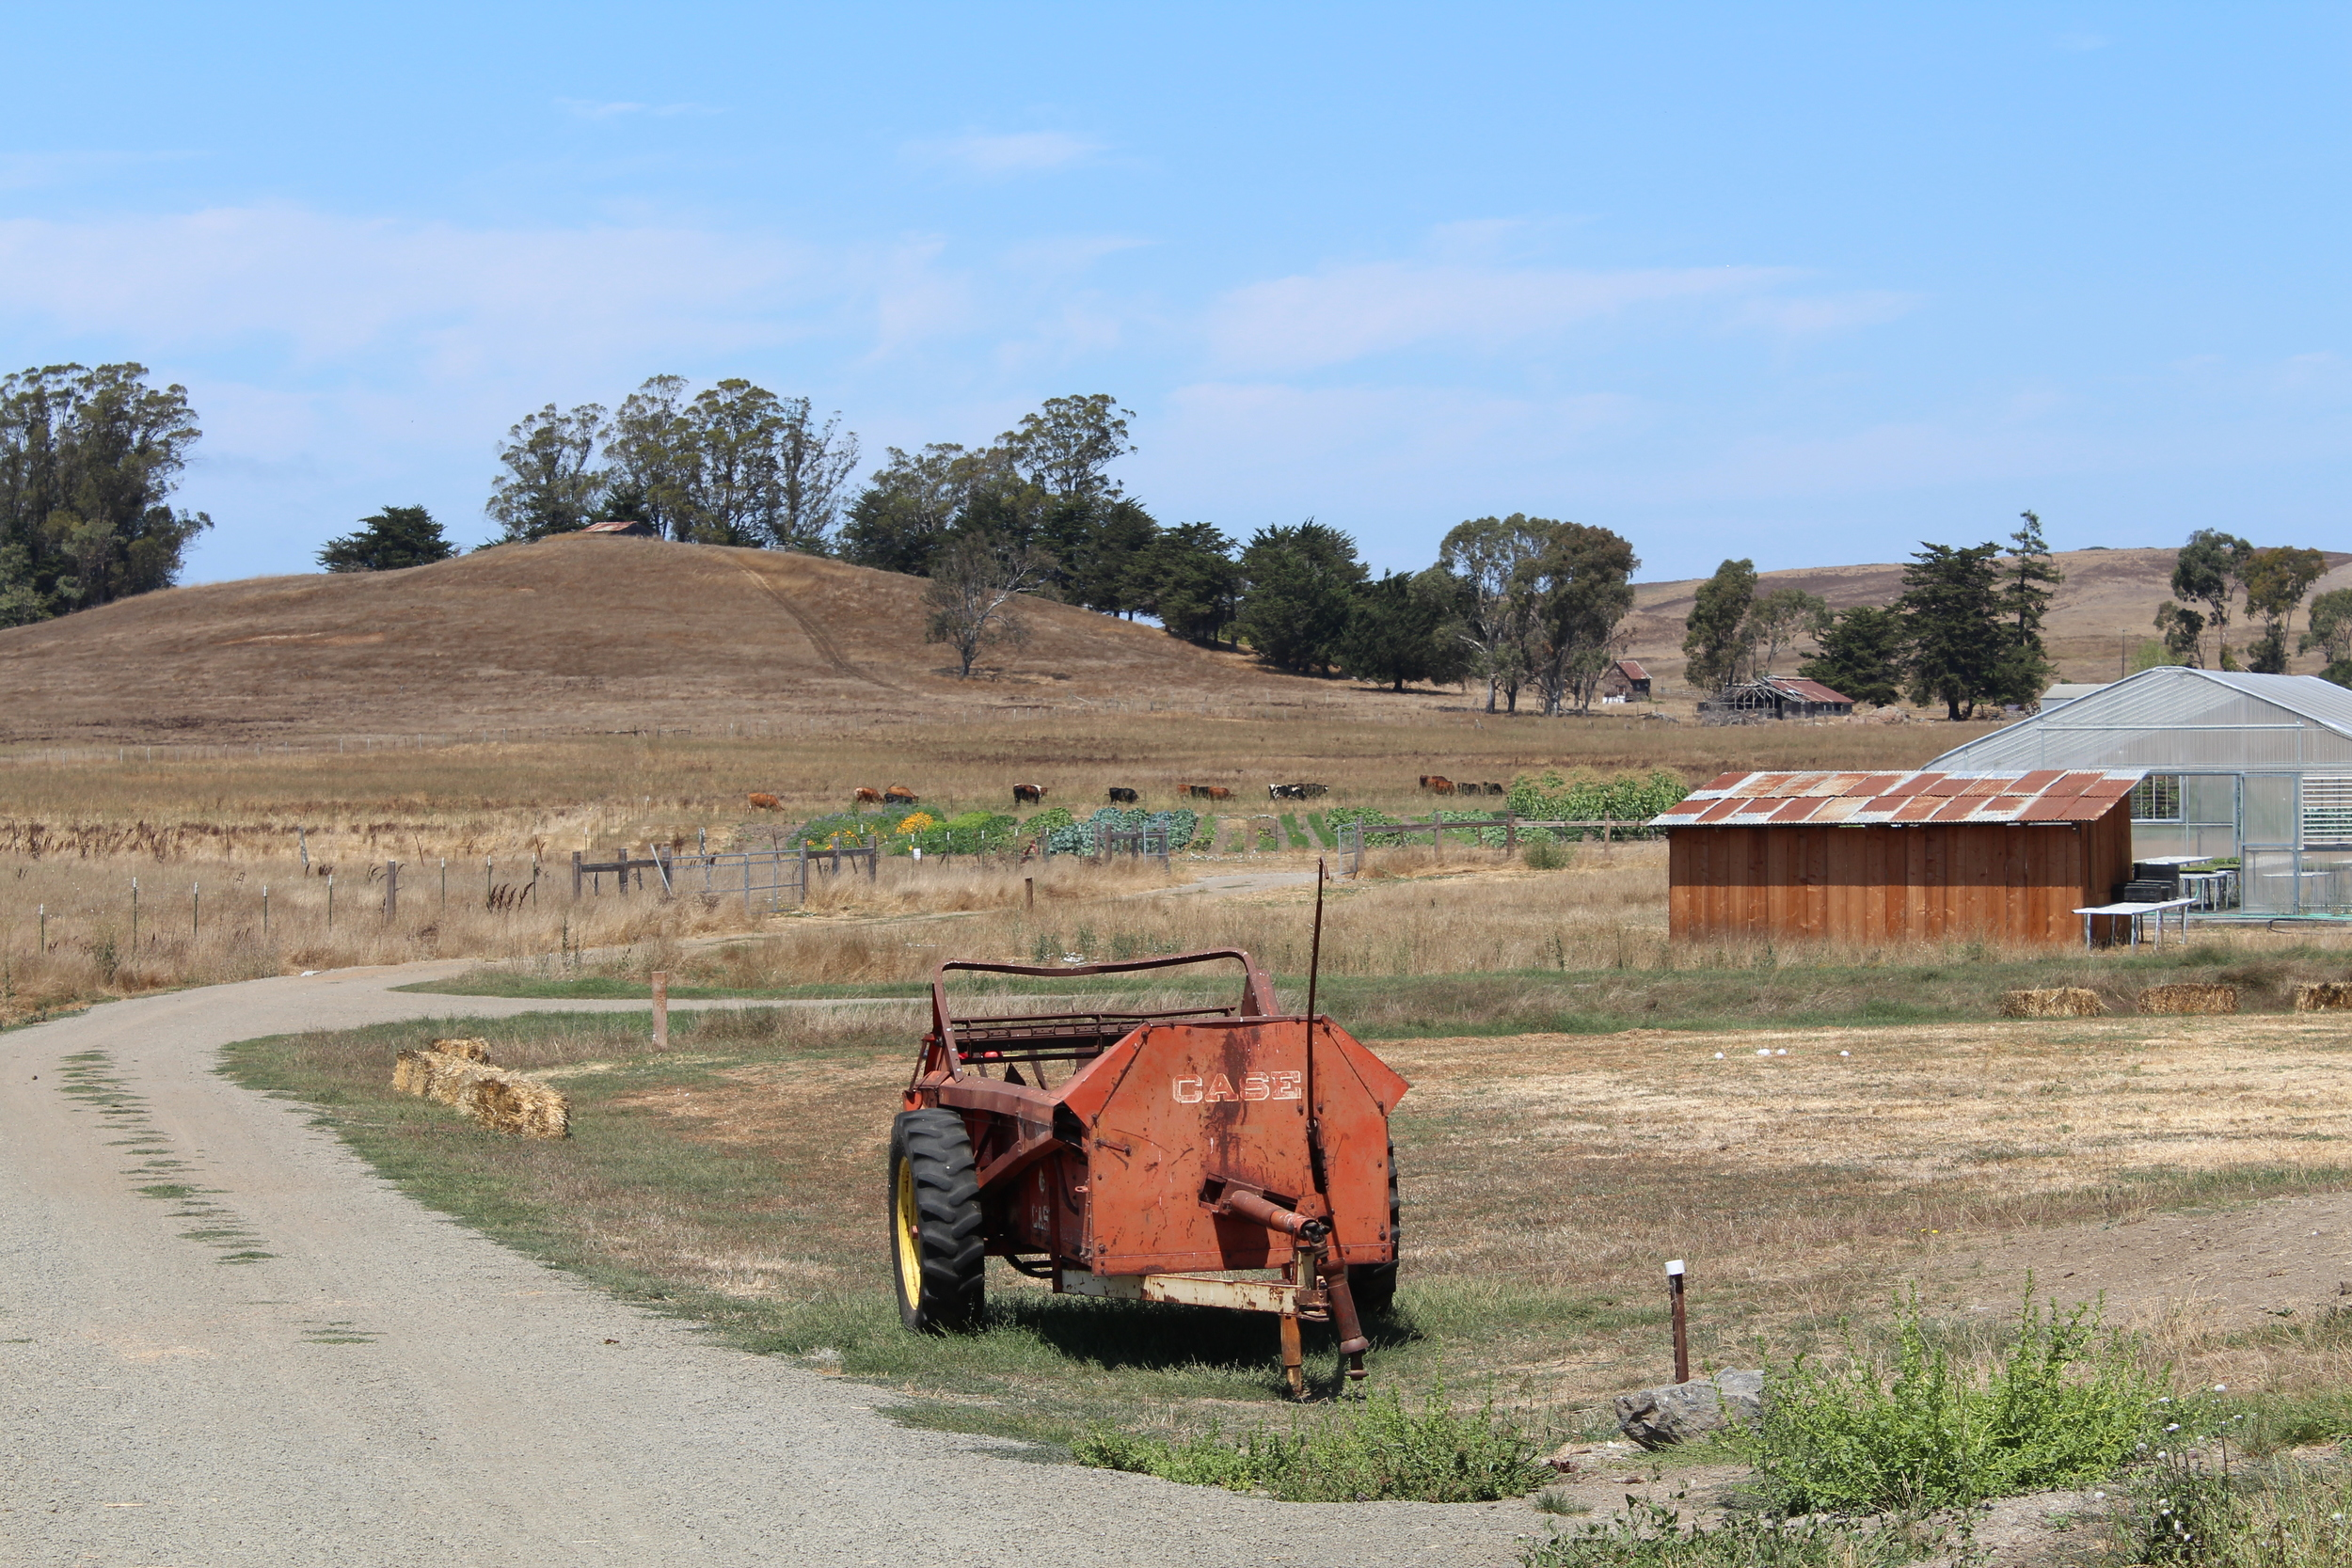 Manure spreader, greenhouse, vegetable fields, and cows.